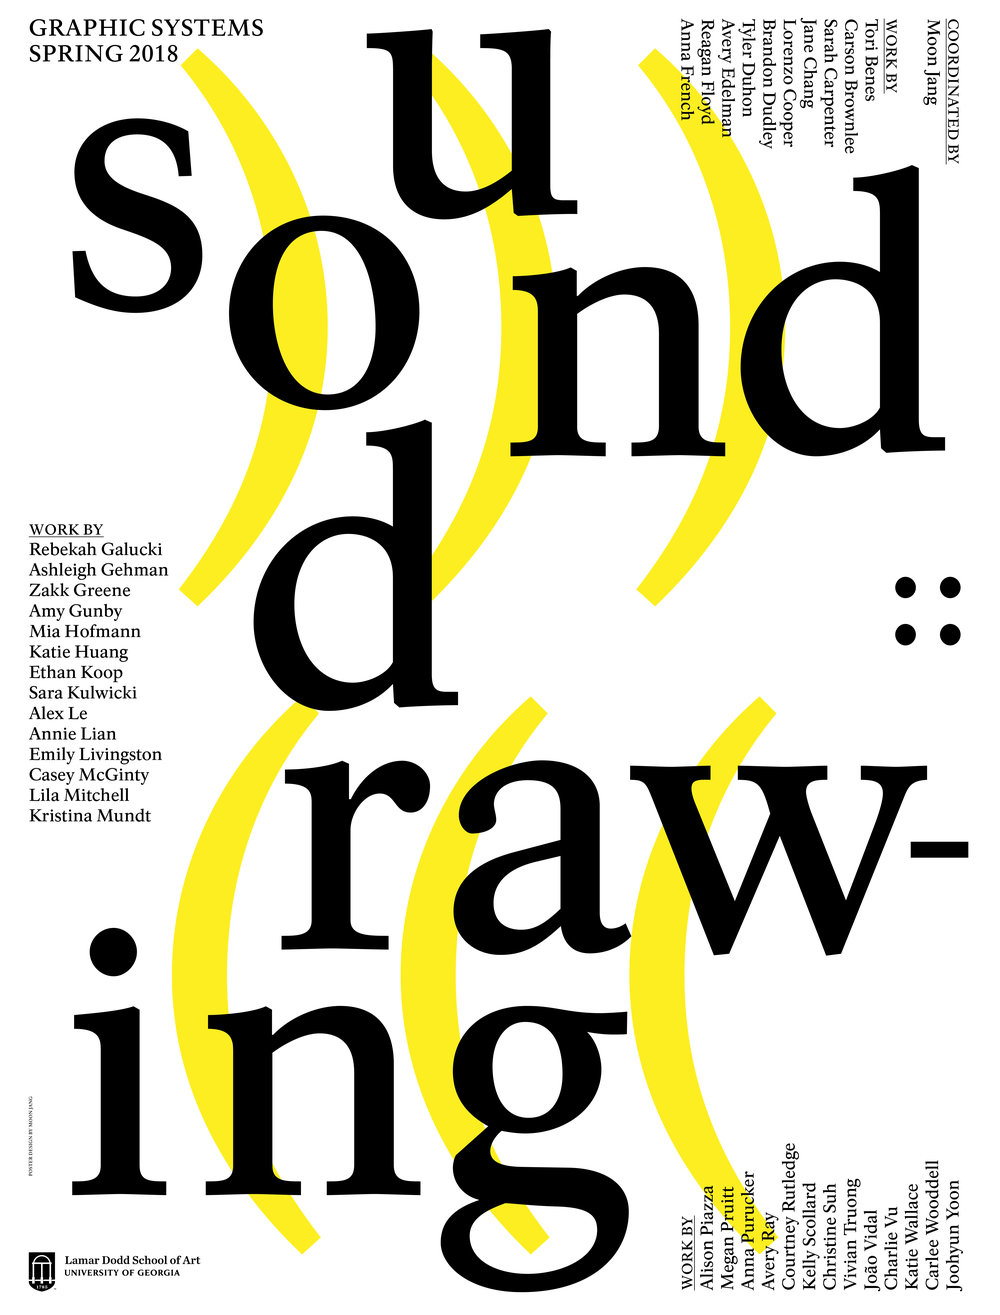 Sound Drawing S posters2.jpg